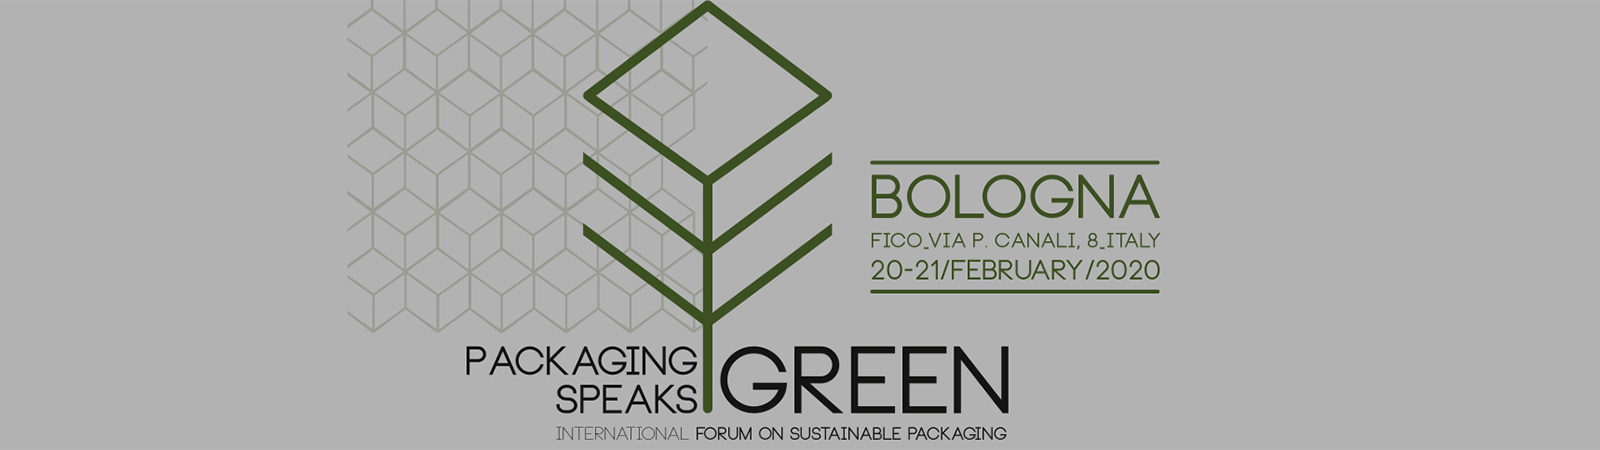 SACMI to be main sponsor of Packaging Speaks Green, Bologna, 20th - 21st February 2020